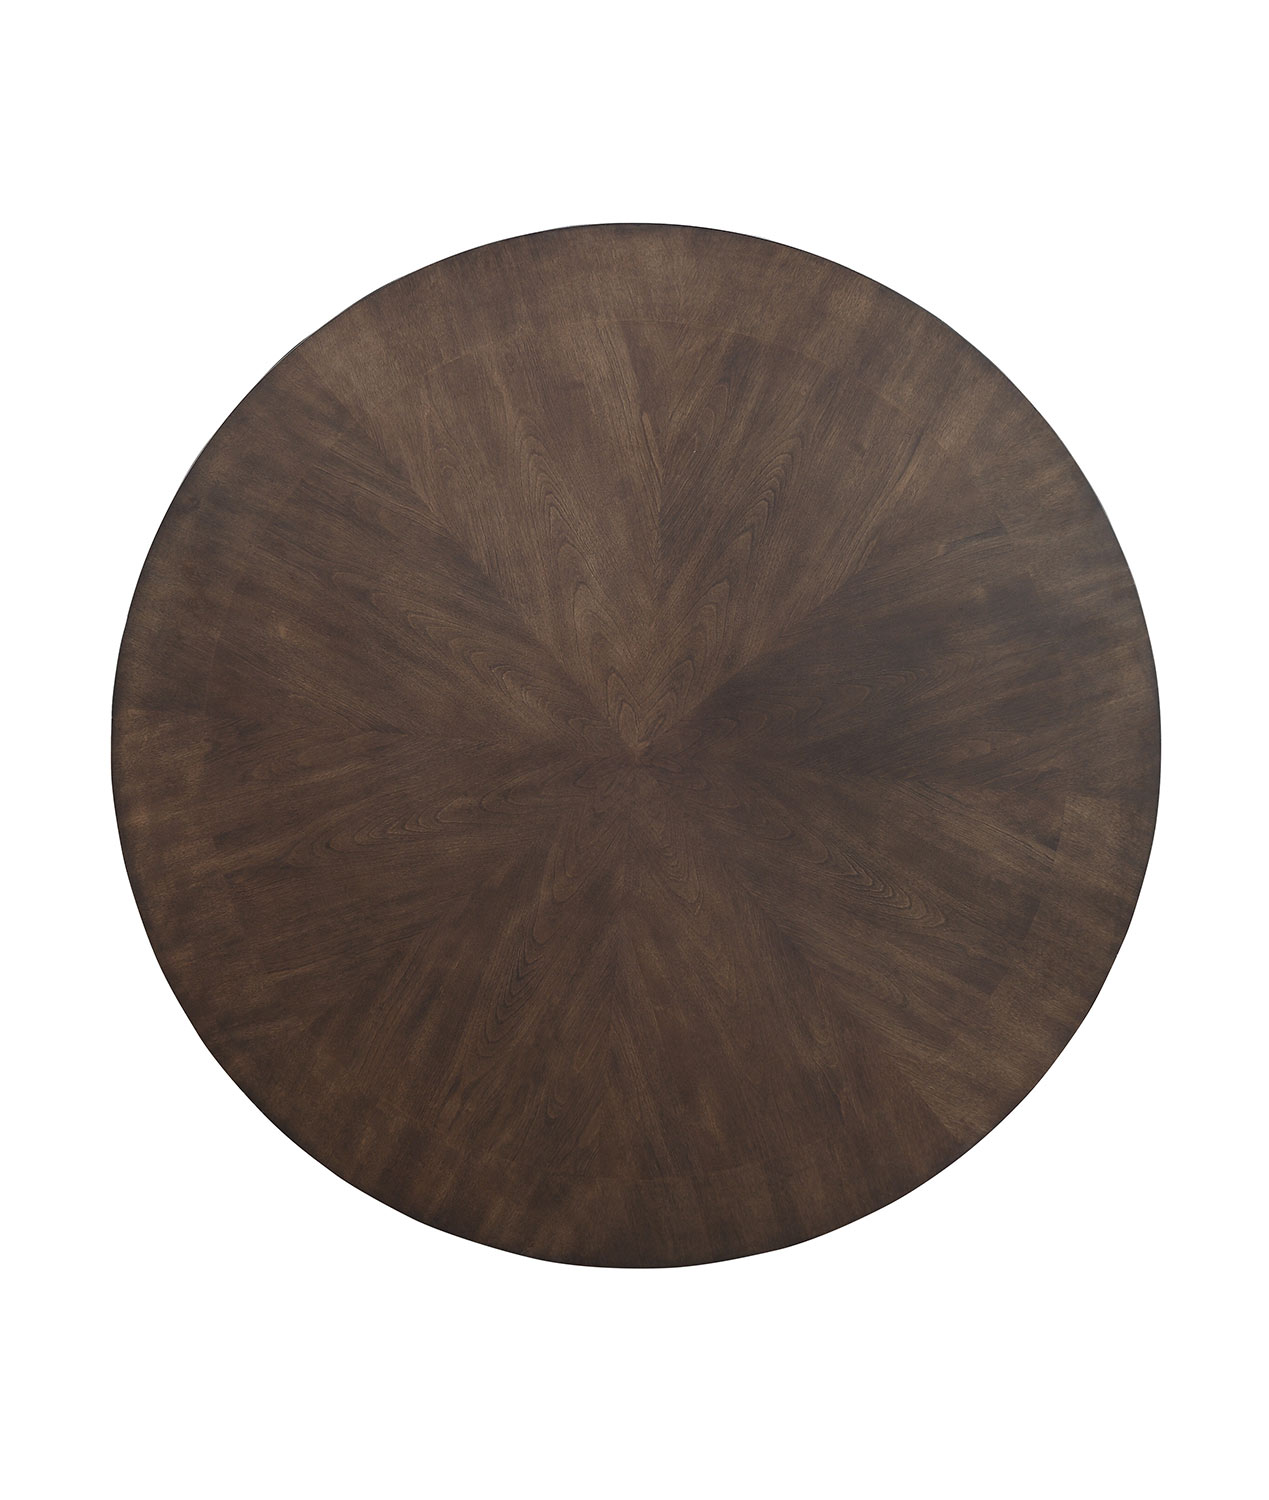 Homelegance Ante Round Dining/Game Table - Dark Brown